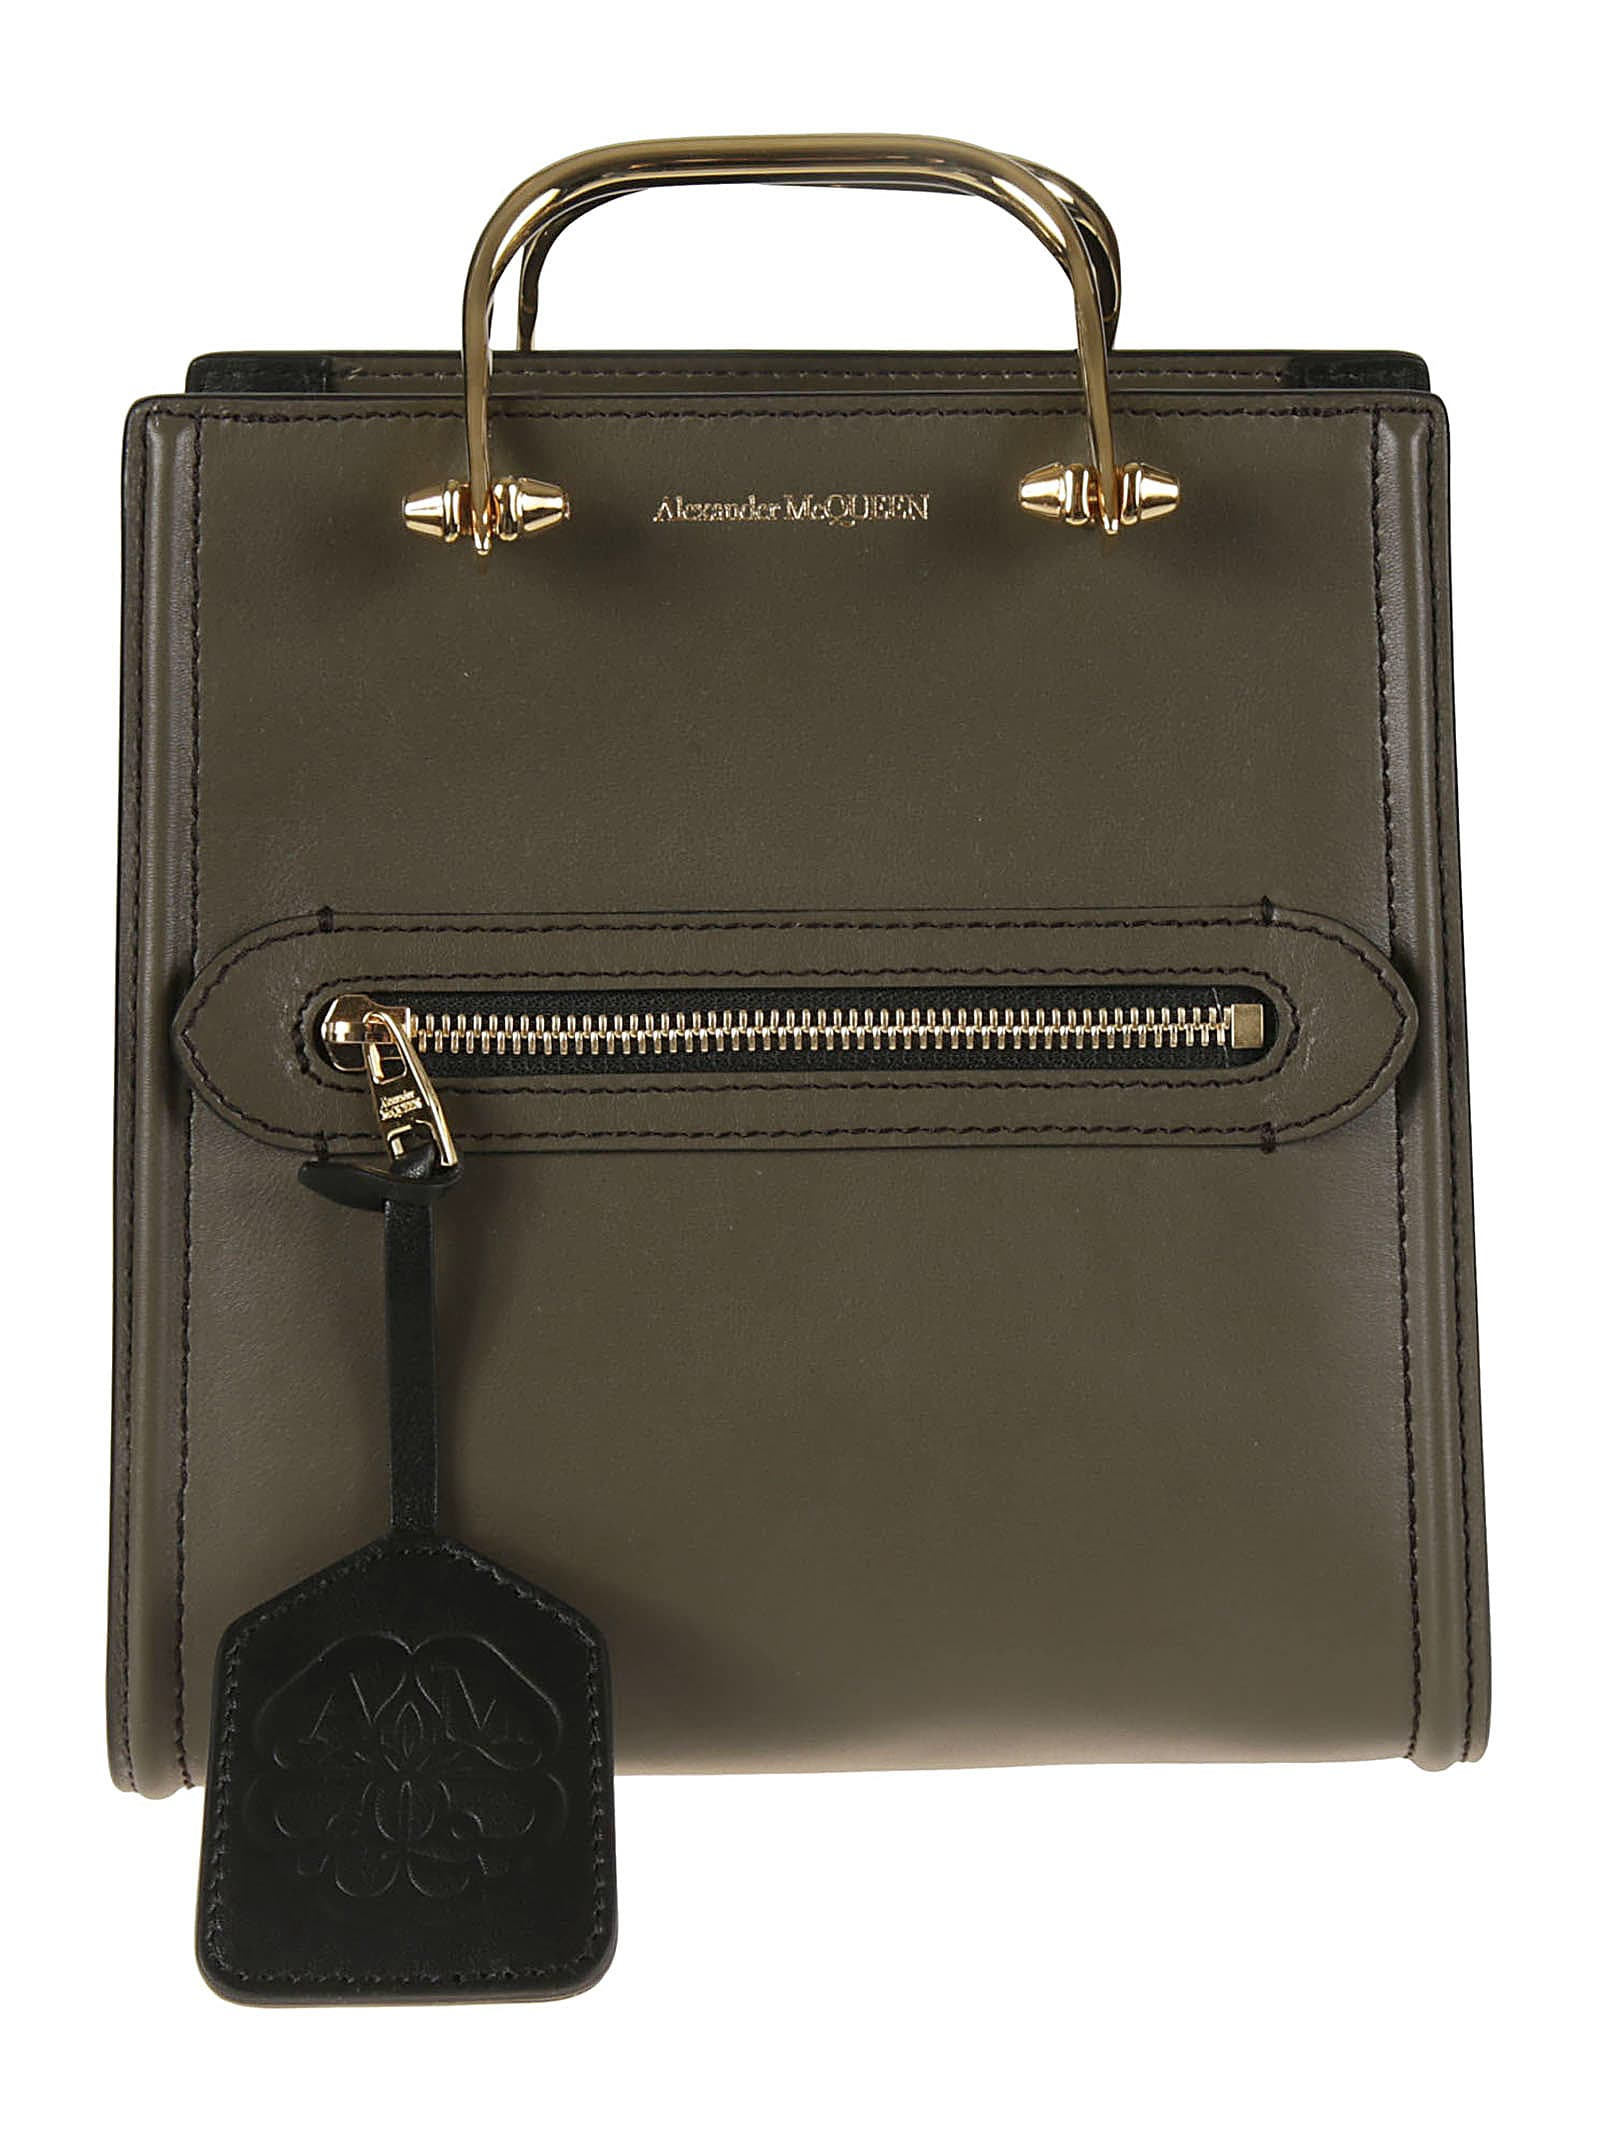 Alexander McQueen The Short Story Tote